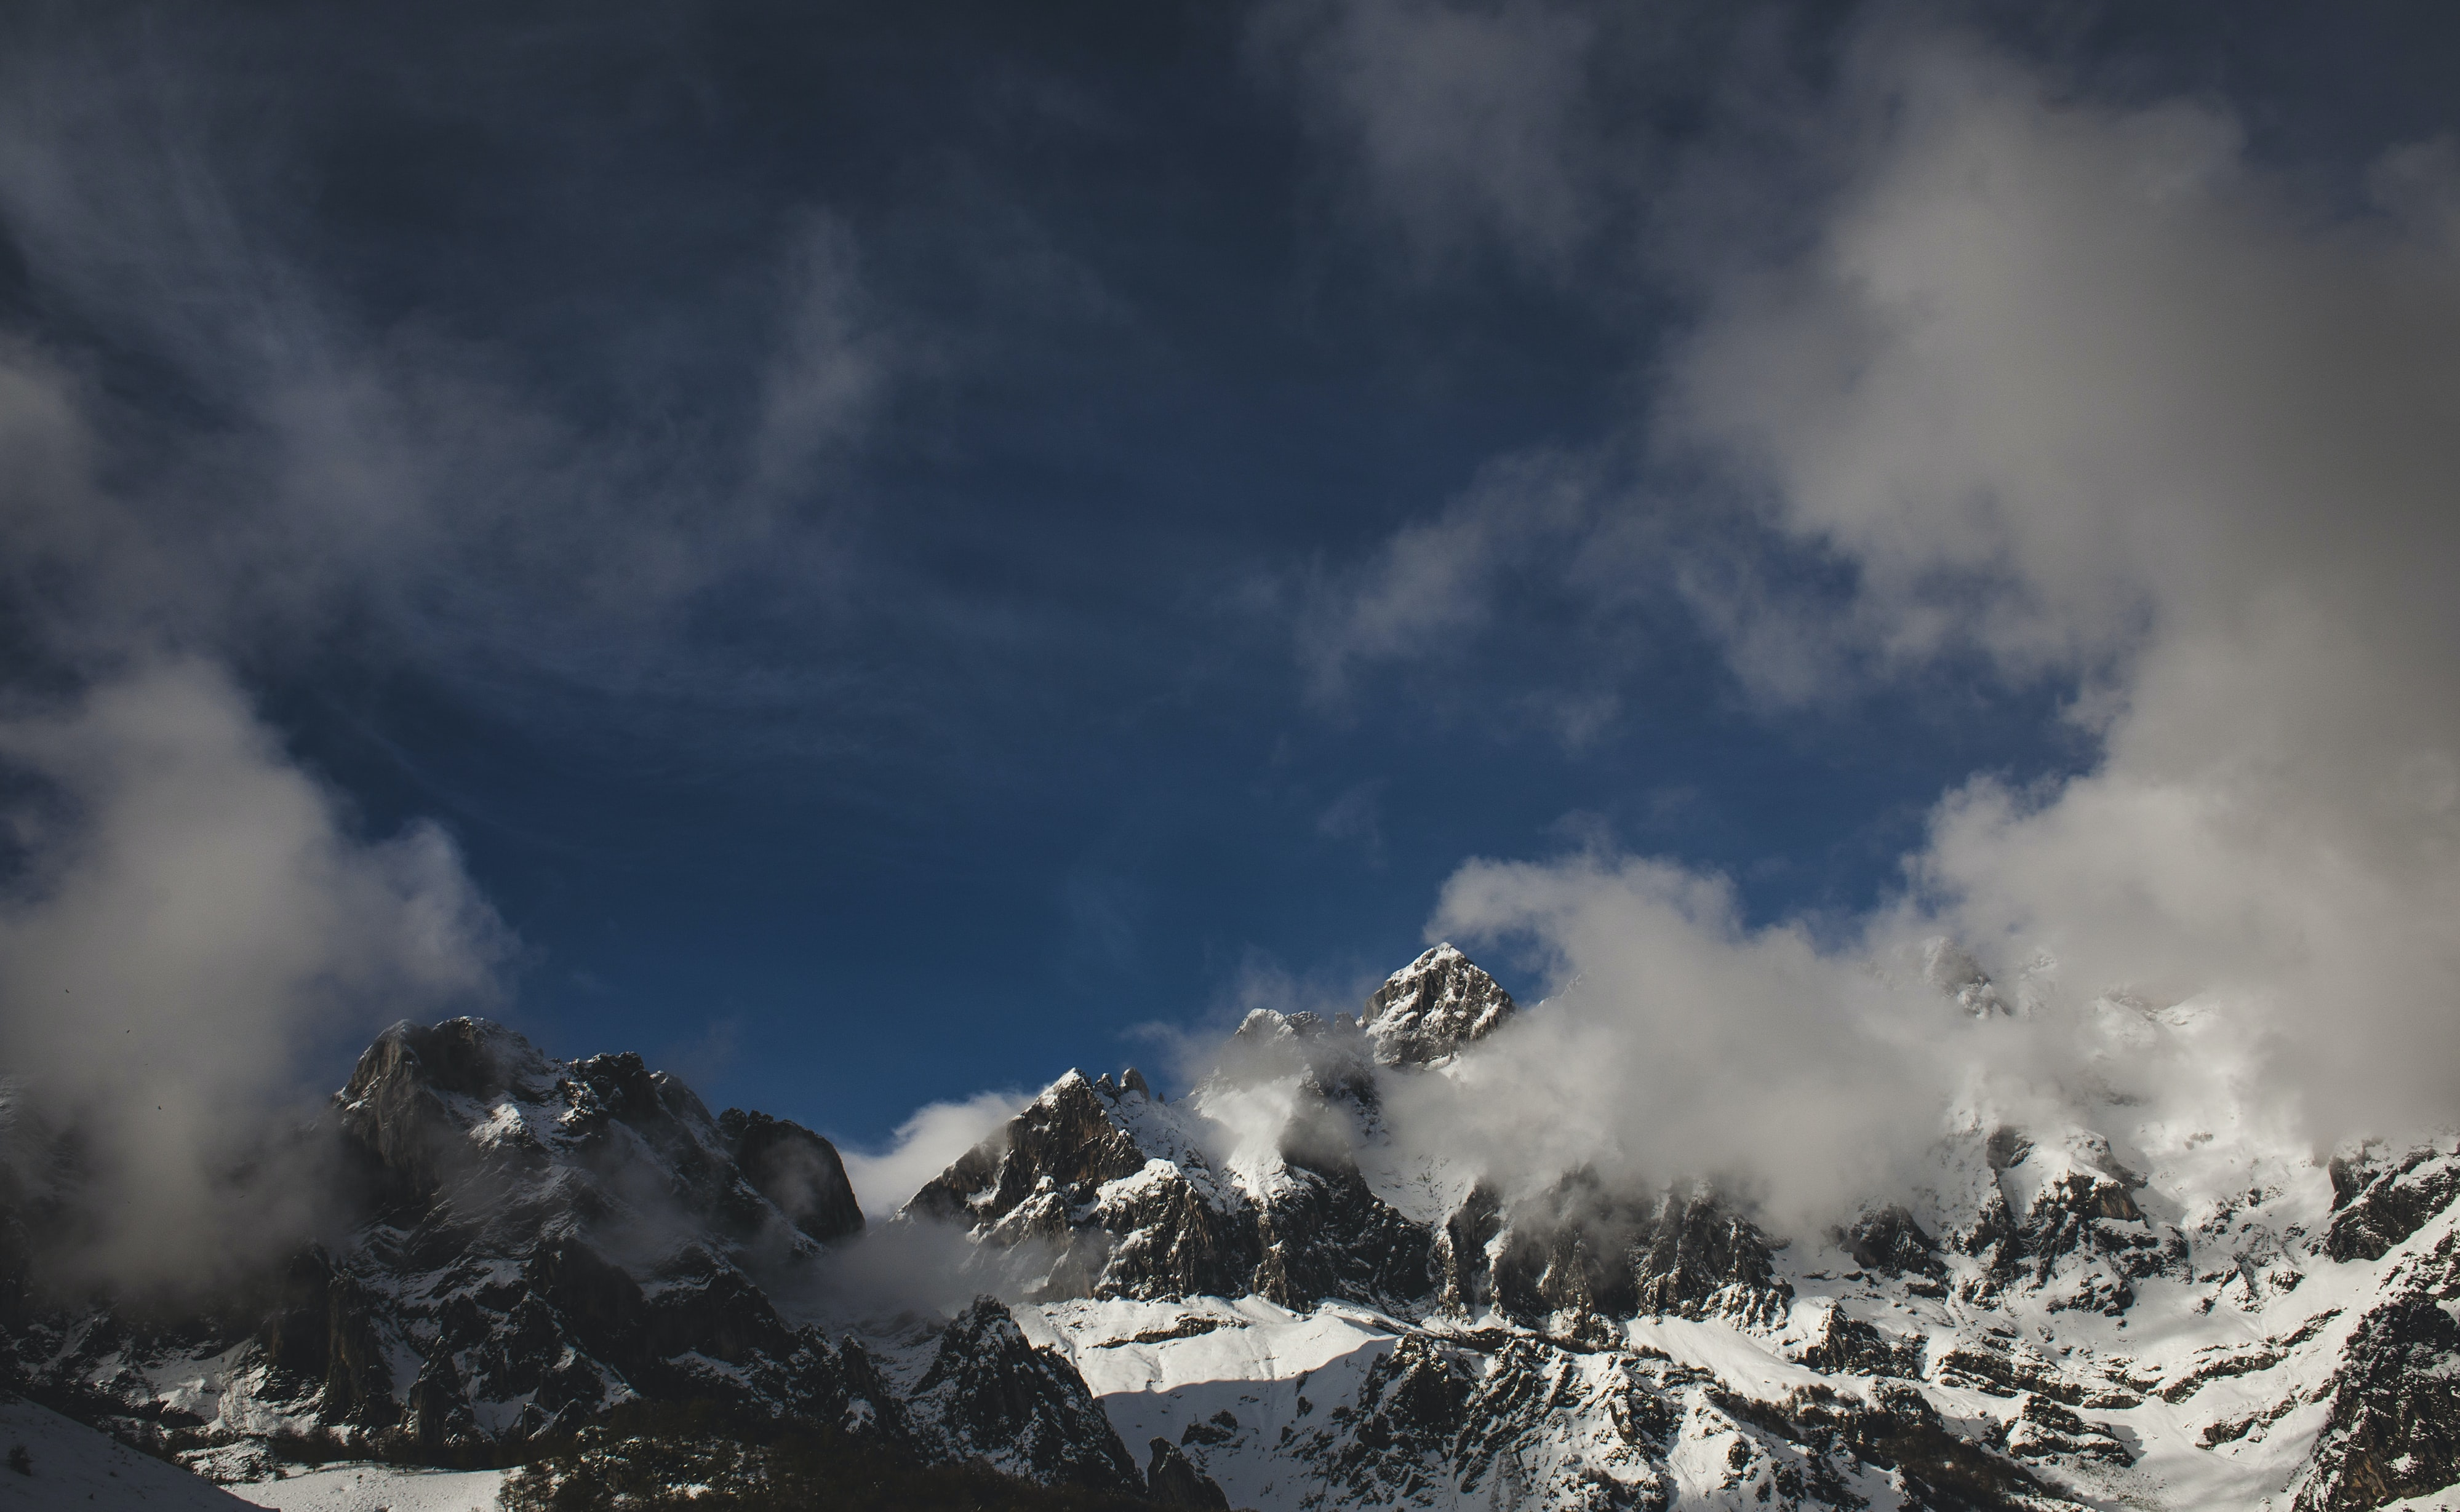 Clouds shrouding a jagged snow-covered mountain ridge in Picos de Europa